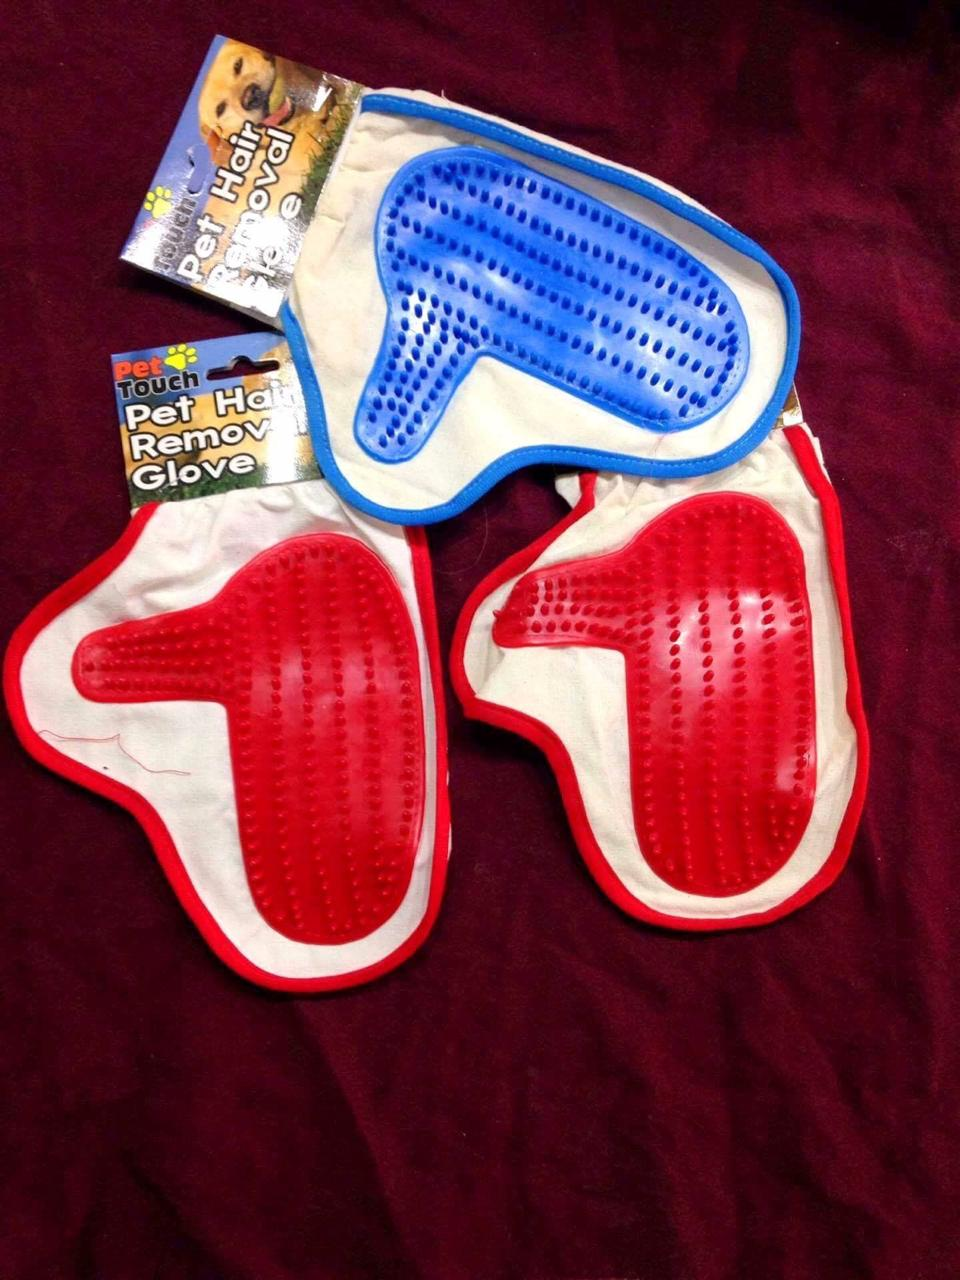 Plastic Big Gloves For Cats And Dogs - Pet Accessories - Pet Store - Pet supplies